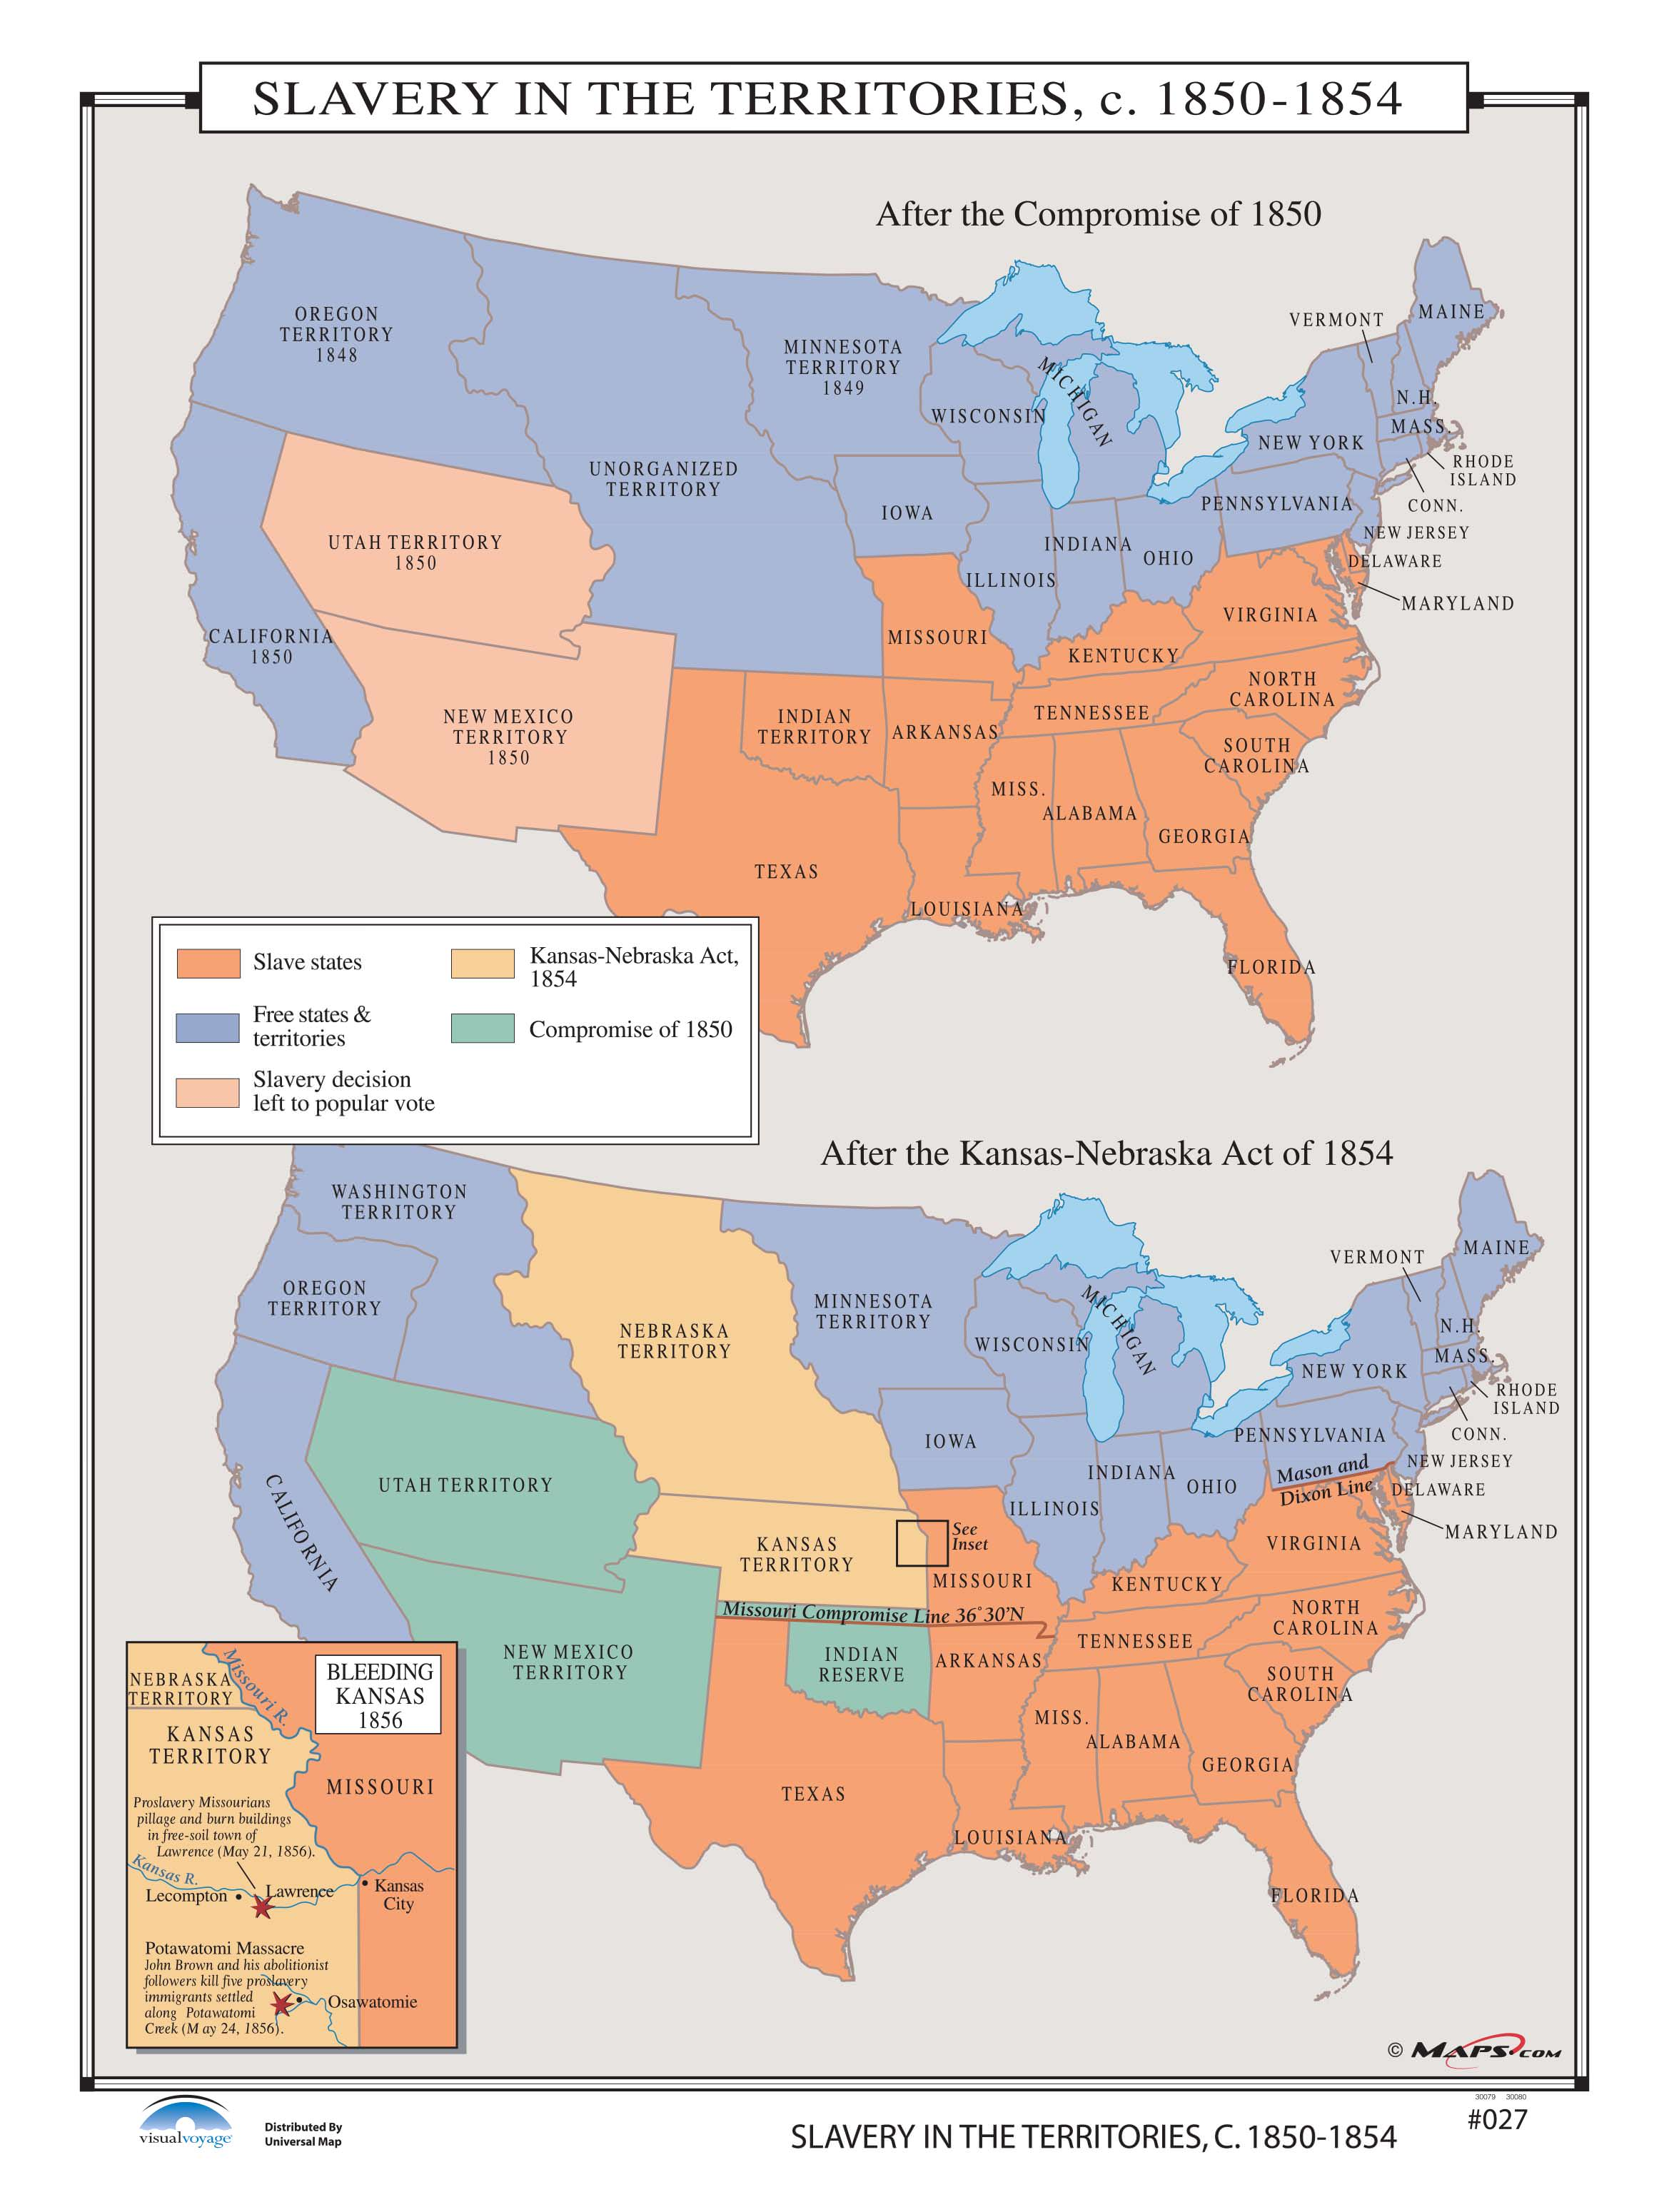 027 Slavery in the Territories, 1850-1854 – KAPPA MAP GROUP